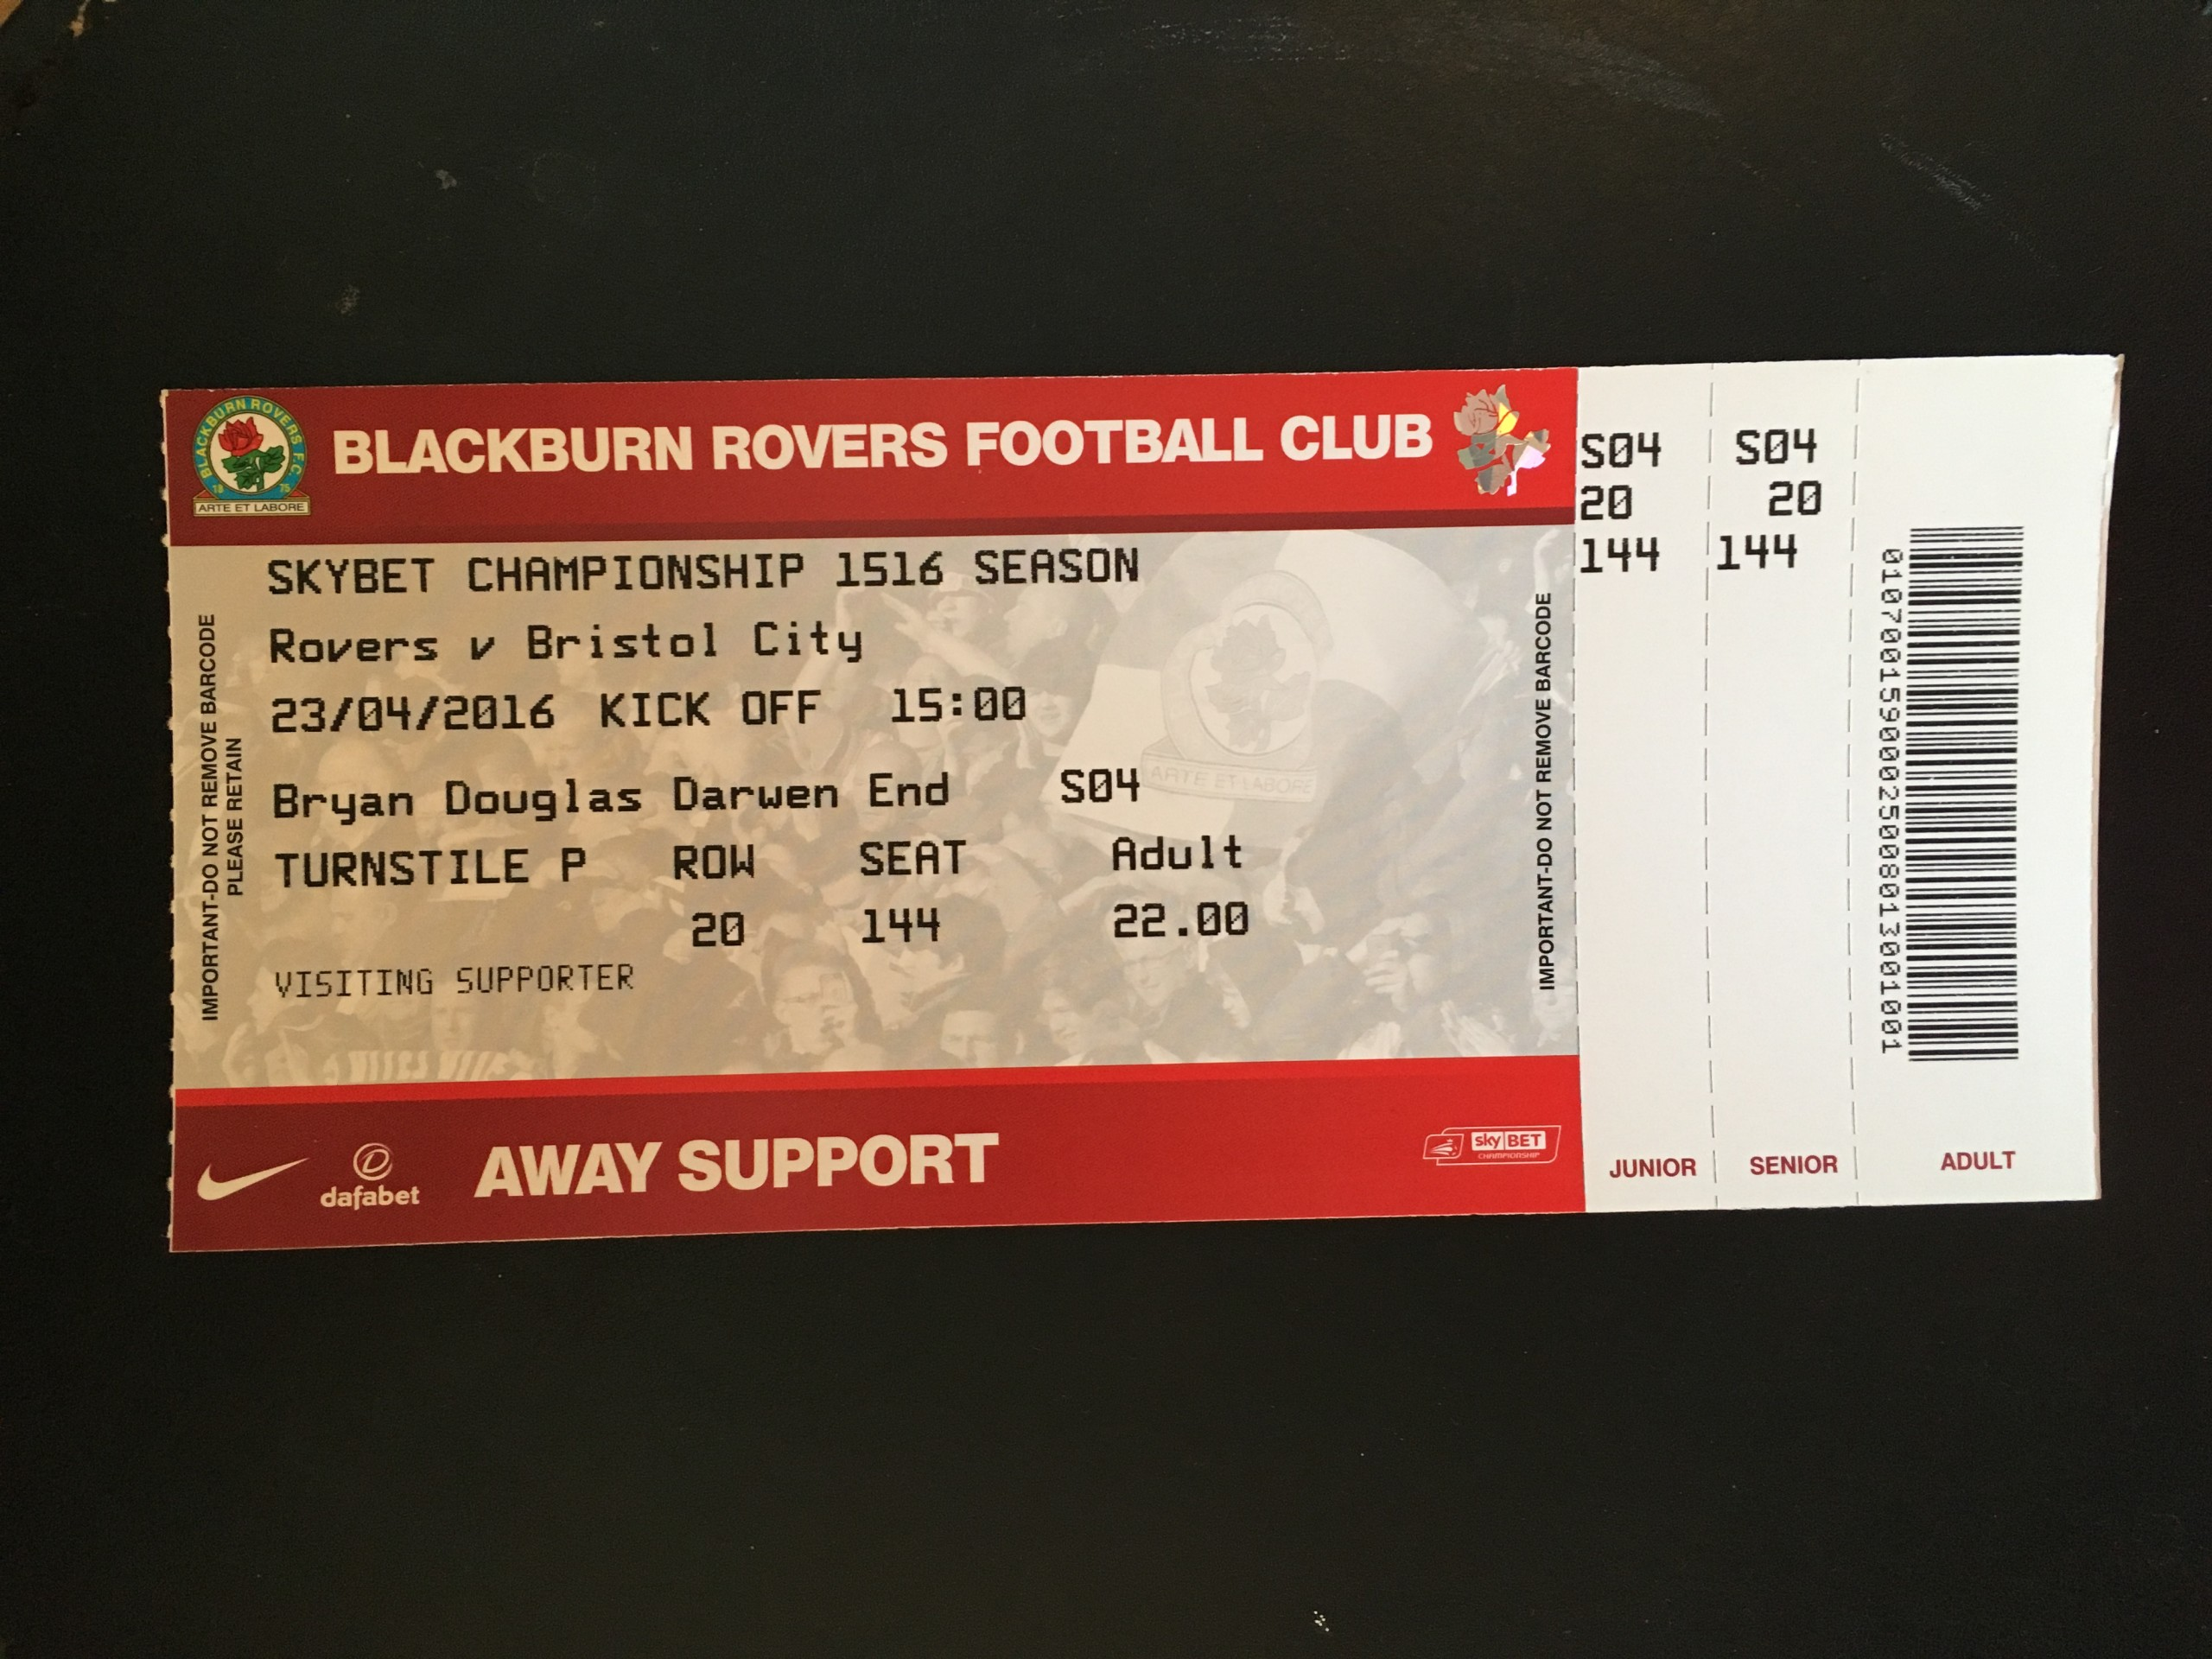 Blackburn Rovers v Bristol City 23-04-2016 Ticket